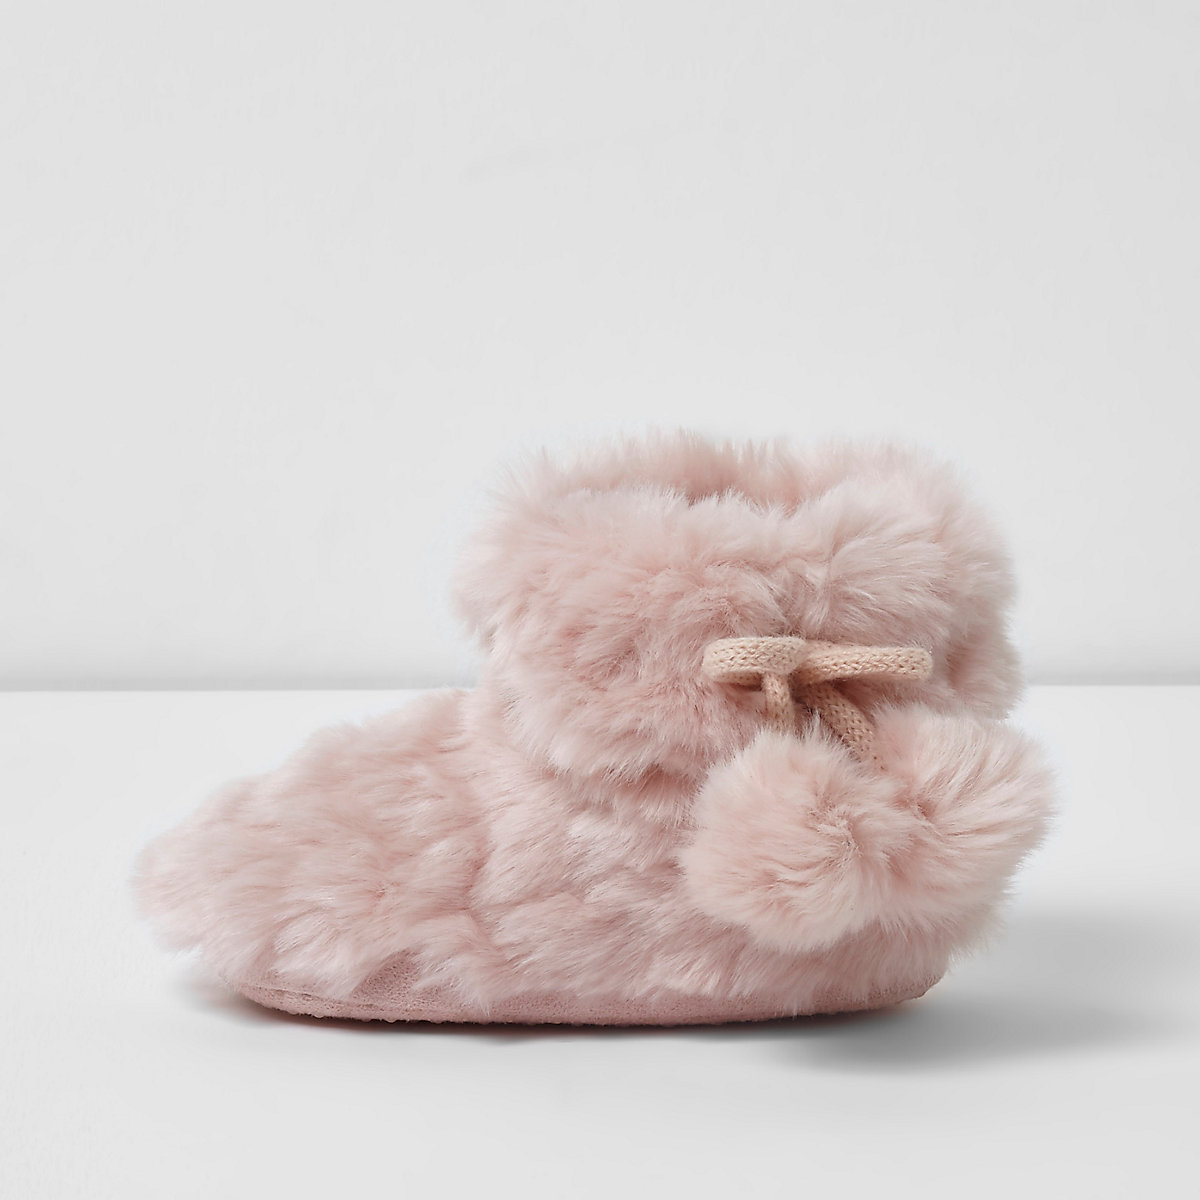 river island slippers size guide